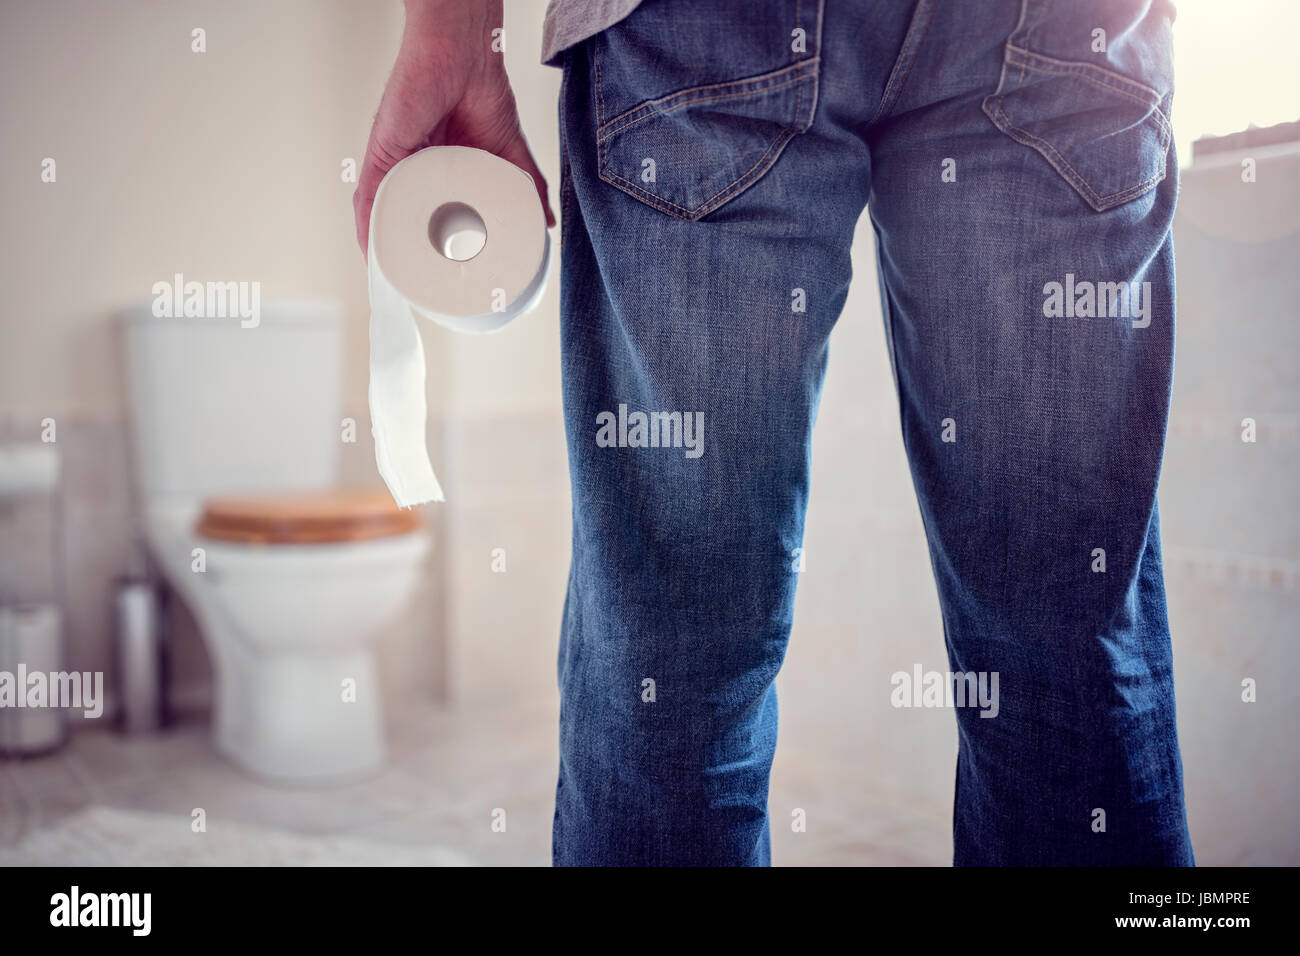 Man Holding Toilet Tissue Roll In Bathroom Looking At Loo Stock. Stunning Bathroom Loo Ideas   Home Design Ideas  Renovations